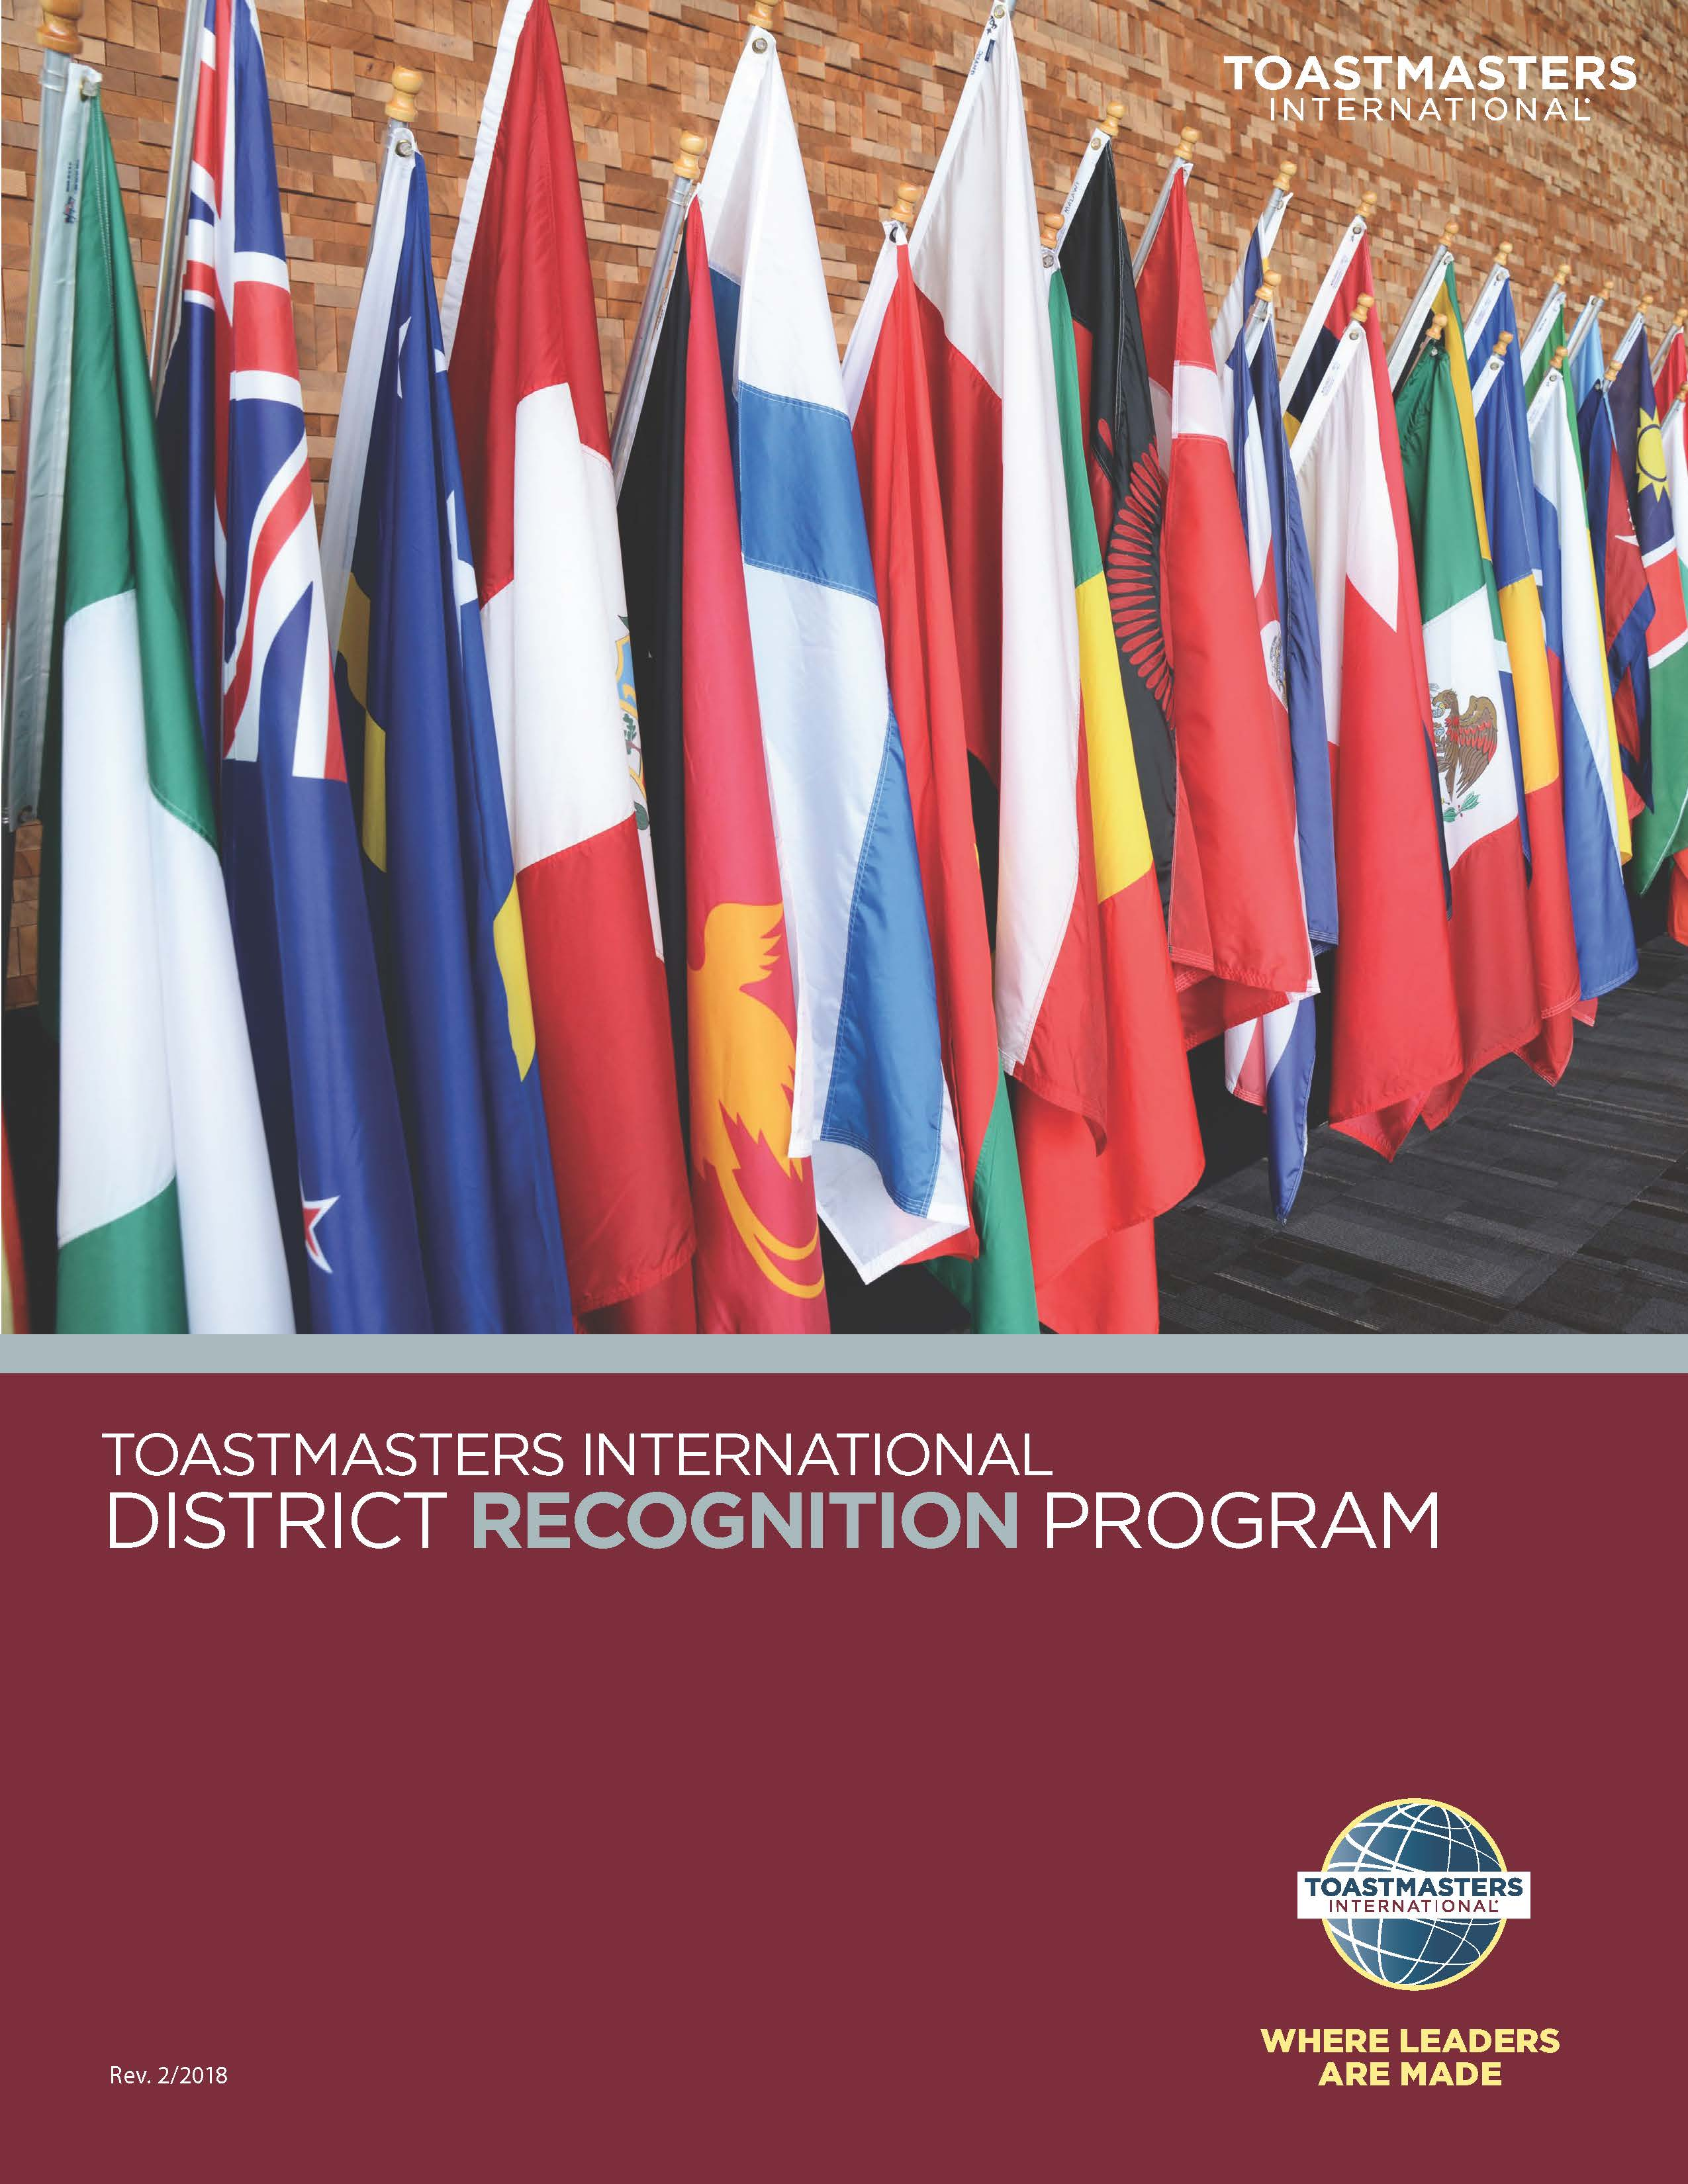 Toastmasters District Recognition Program